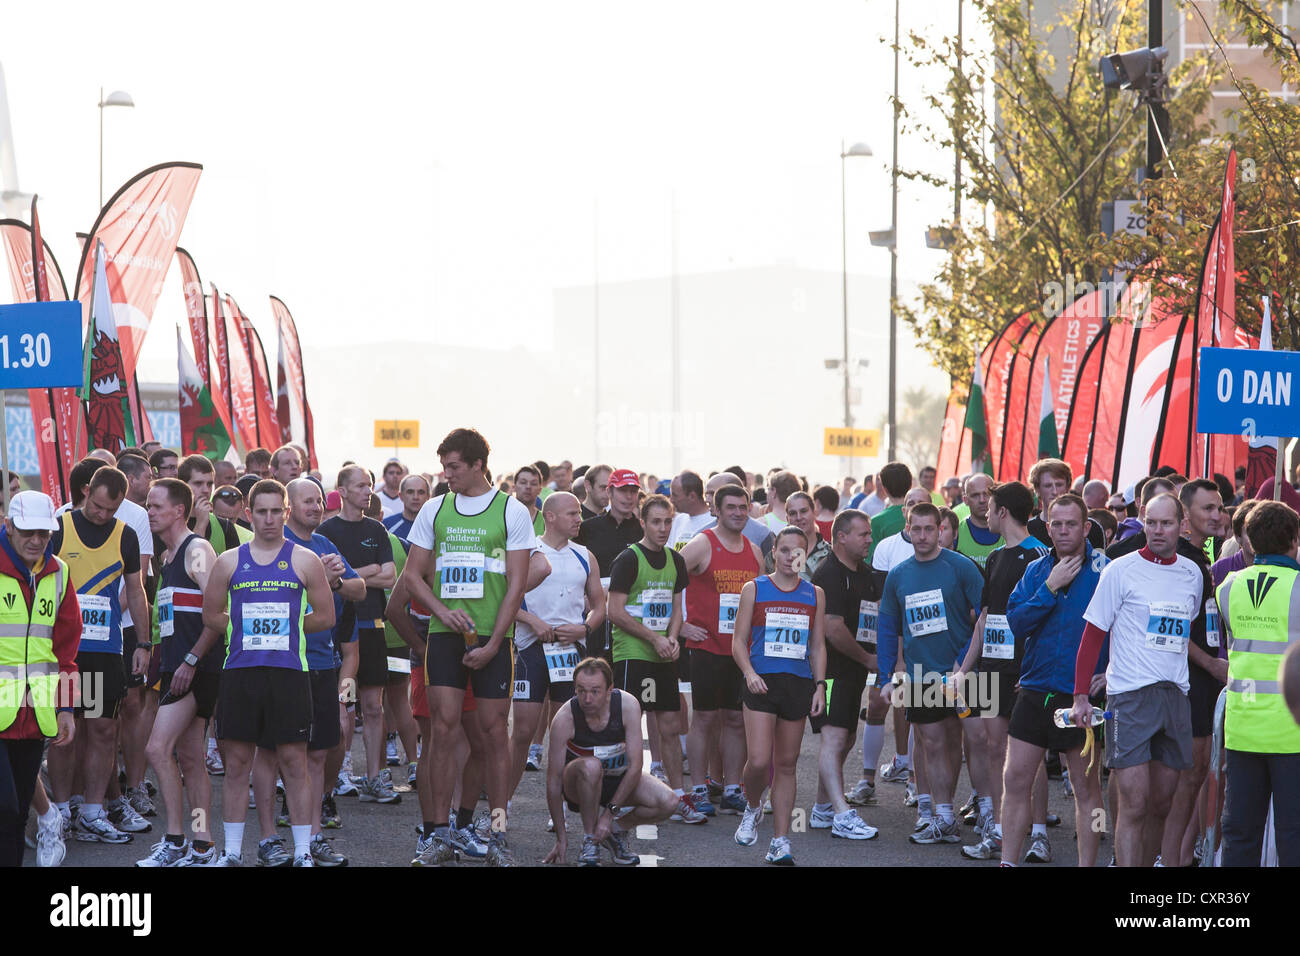 The elite runners wait at the start line for the beginning of the Cardiff Half marathon 2011. - Stock Image